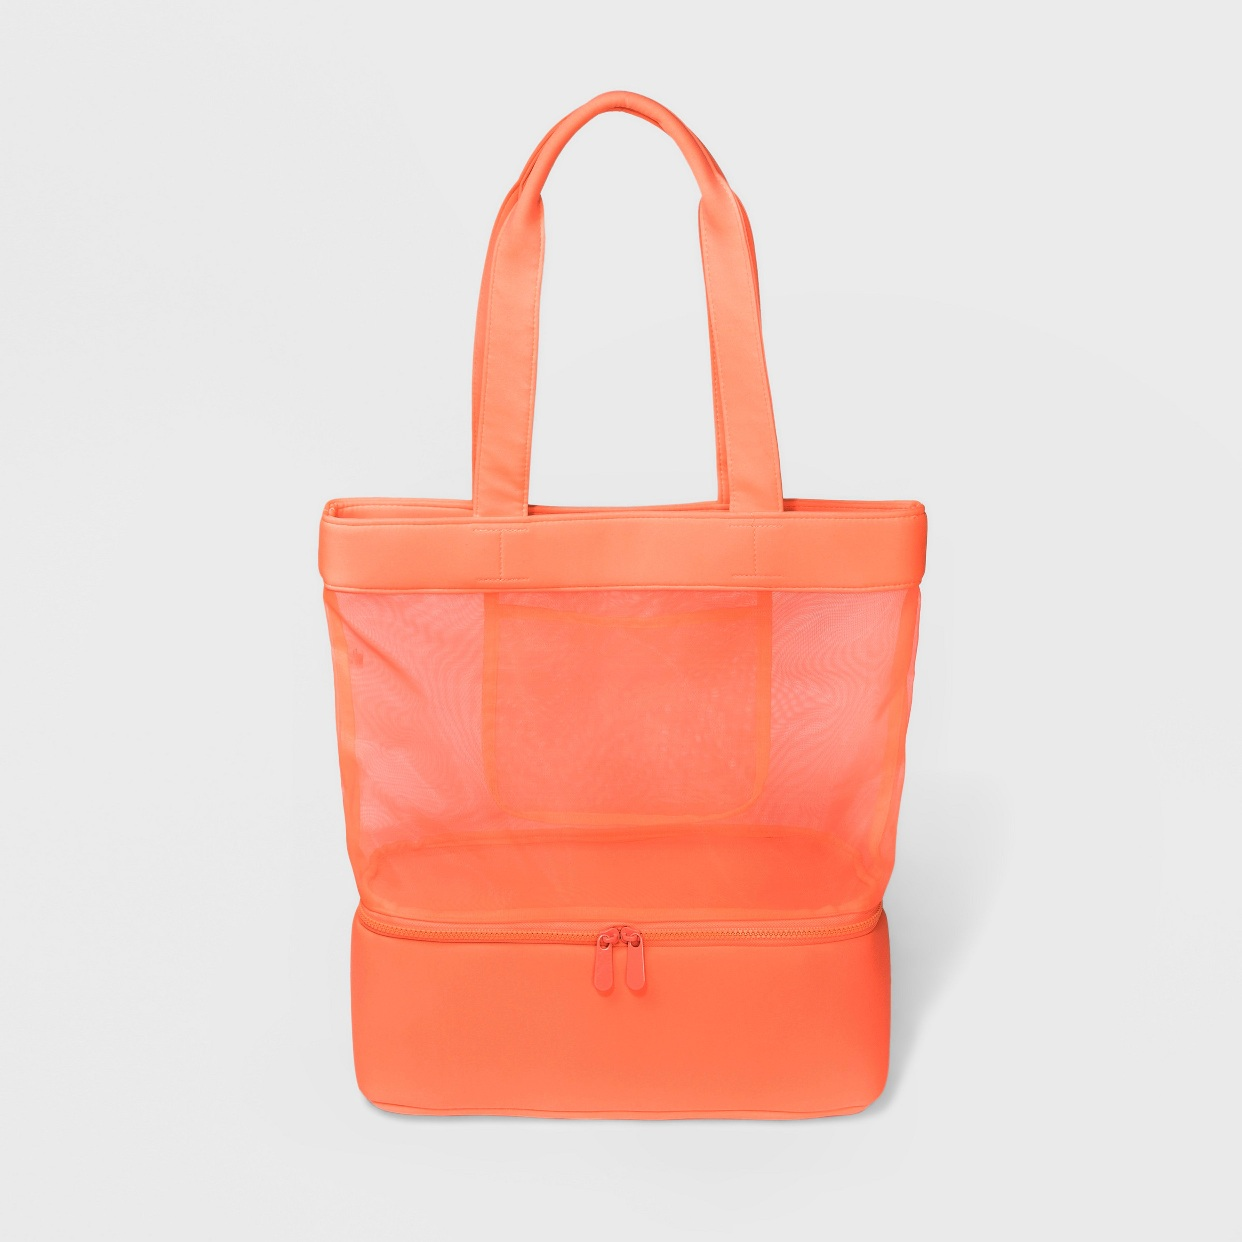 - This bag is light, fits a ton of stuff, and I'm loving that bottom com compartment!Find it here.